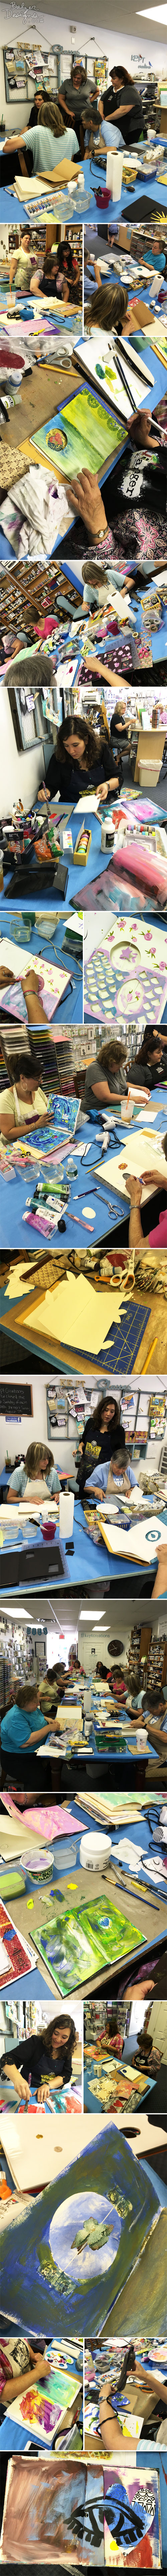 From the Balzer Designs Blog: Three Classes At Kept Creations